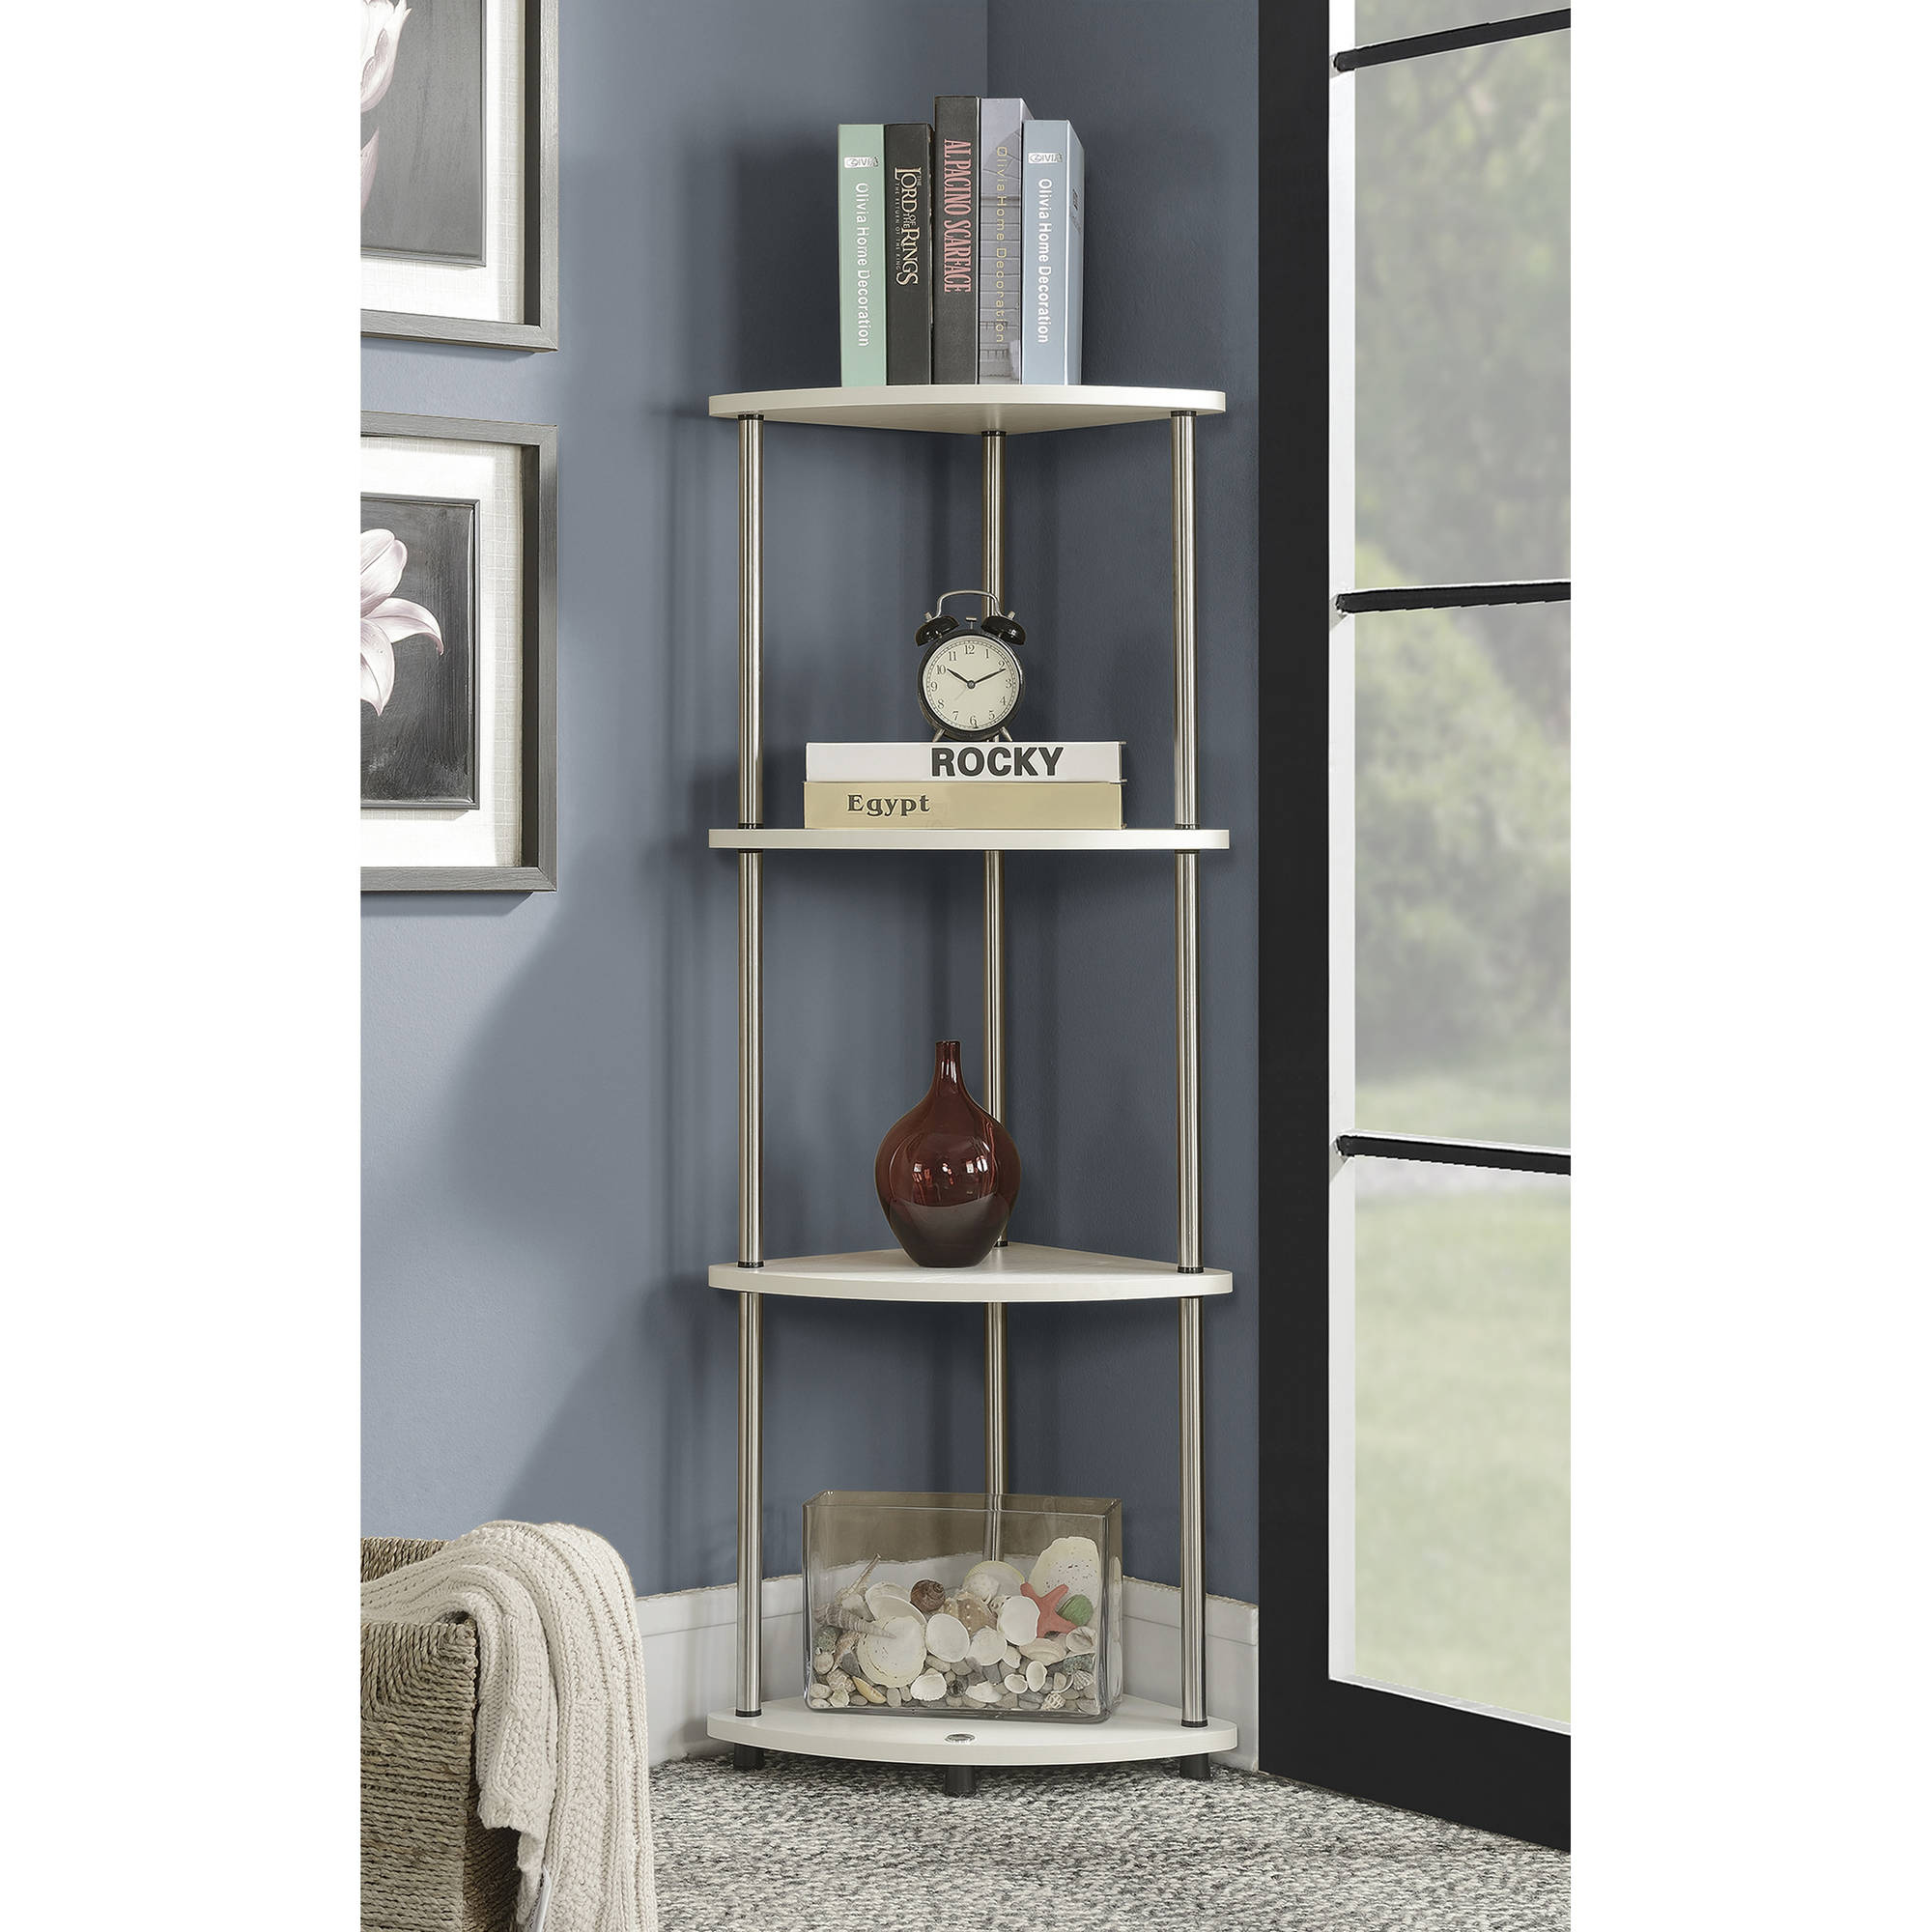 Convenience Concepts Designs2Go No Tools 4 Tier Corner Shelf, Black and Silver by Convenience Concepts